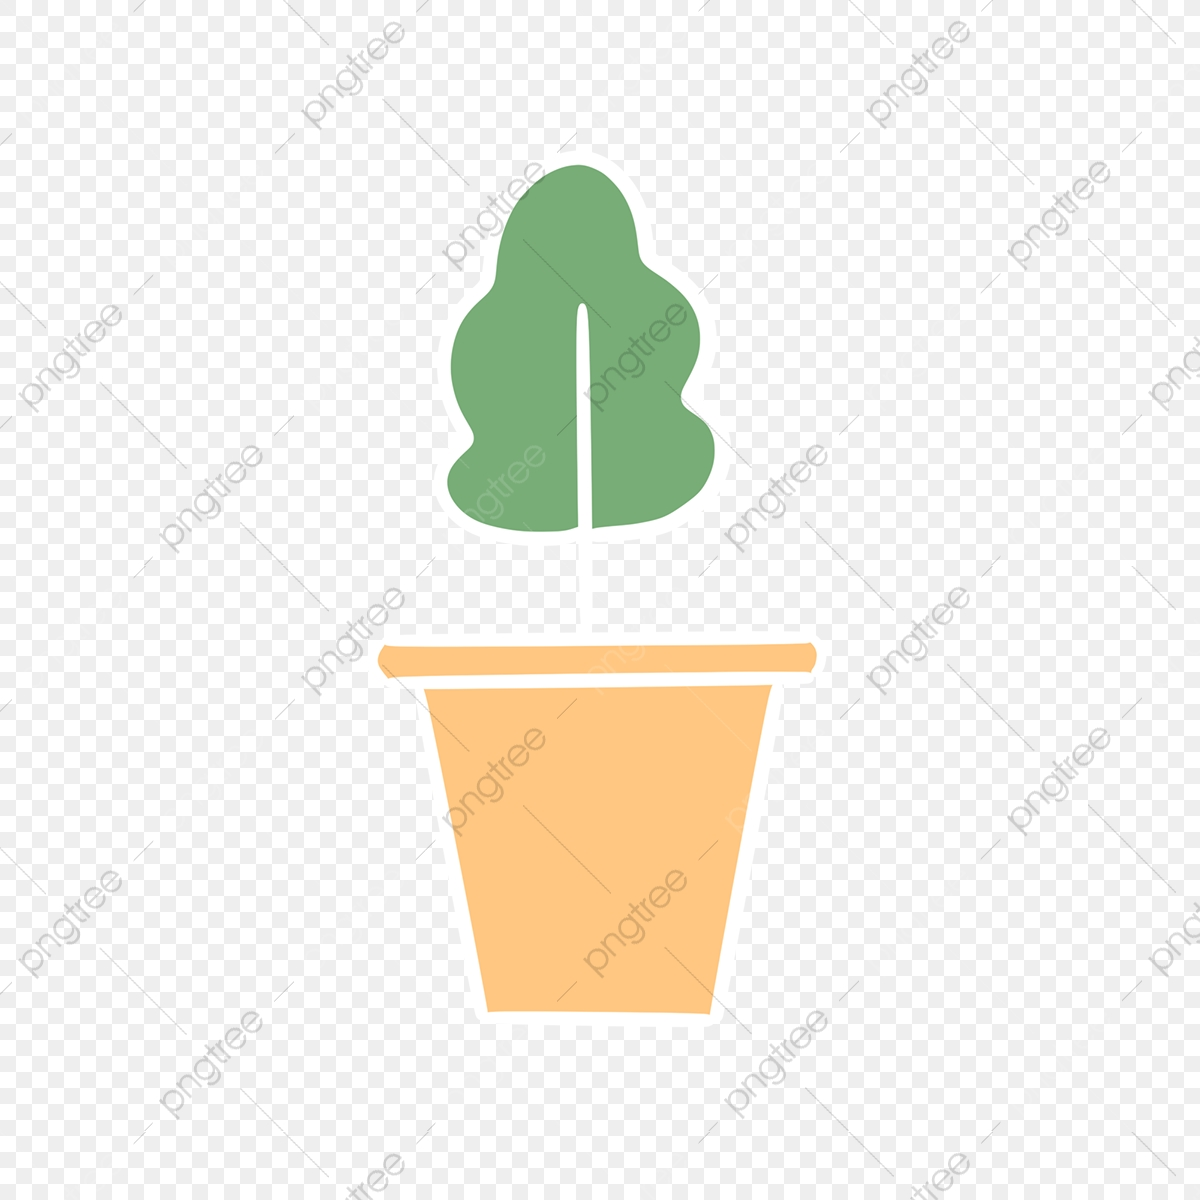 Hand Drawn Cute Simple Plants Drawing Pot Nature Png Transparent Clipart Image And Psd File For Free Download